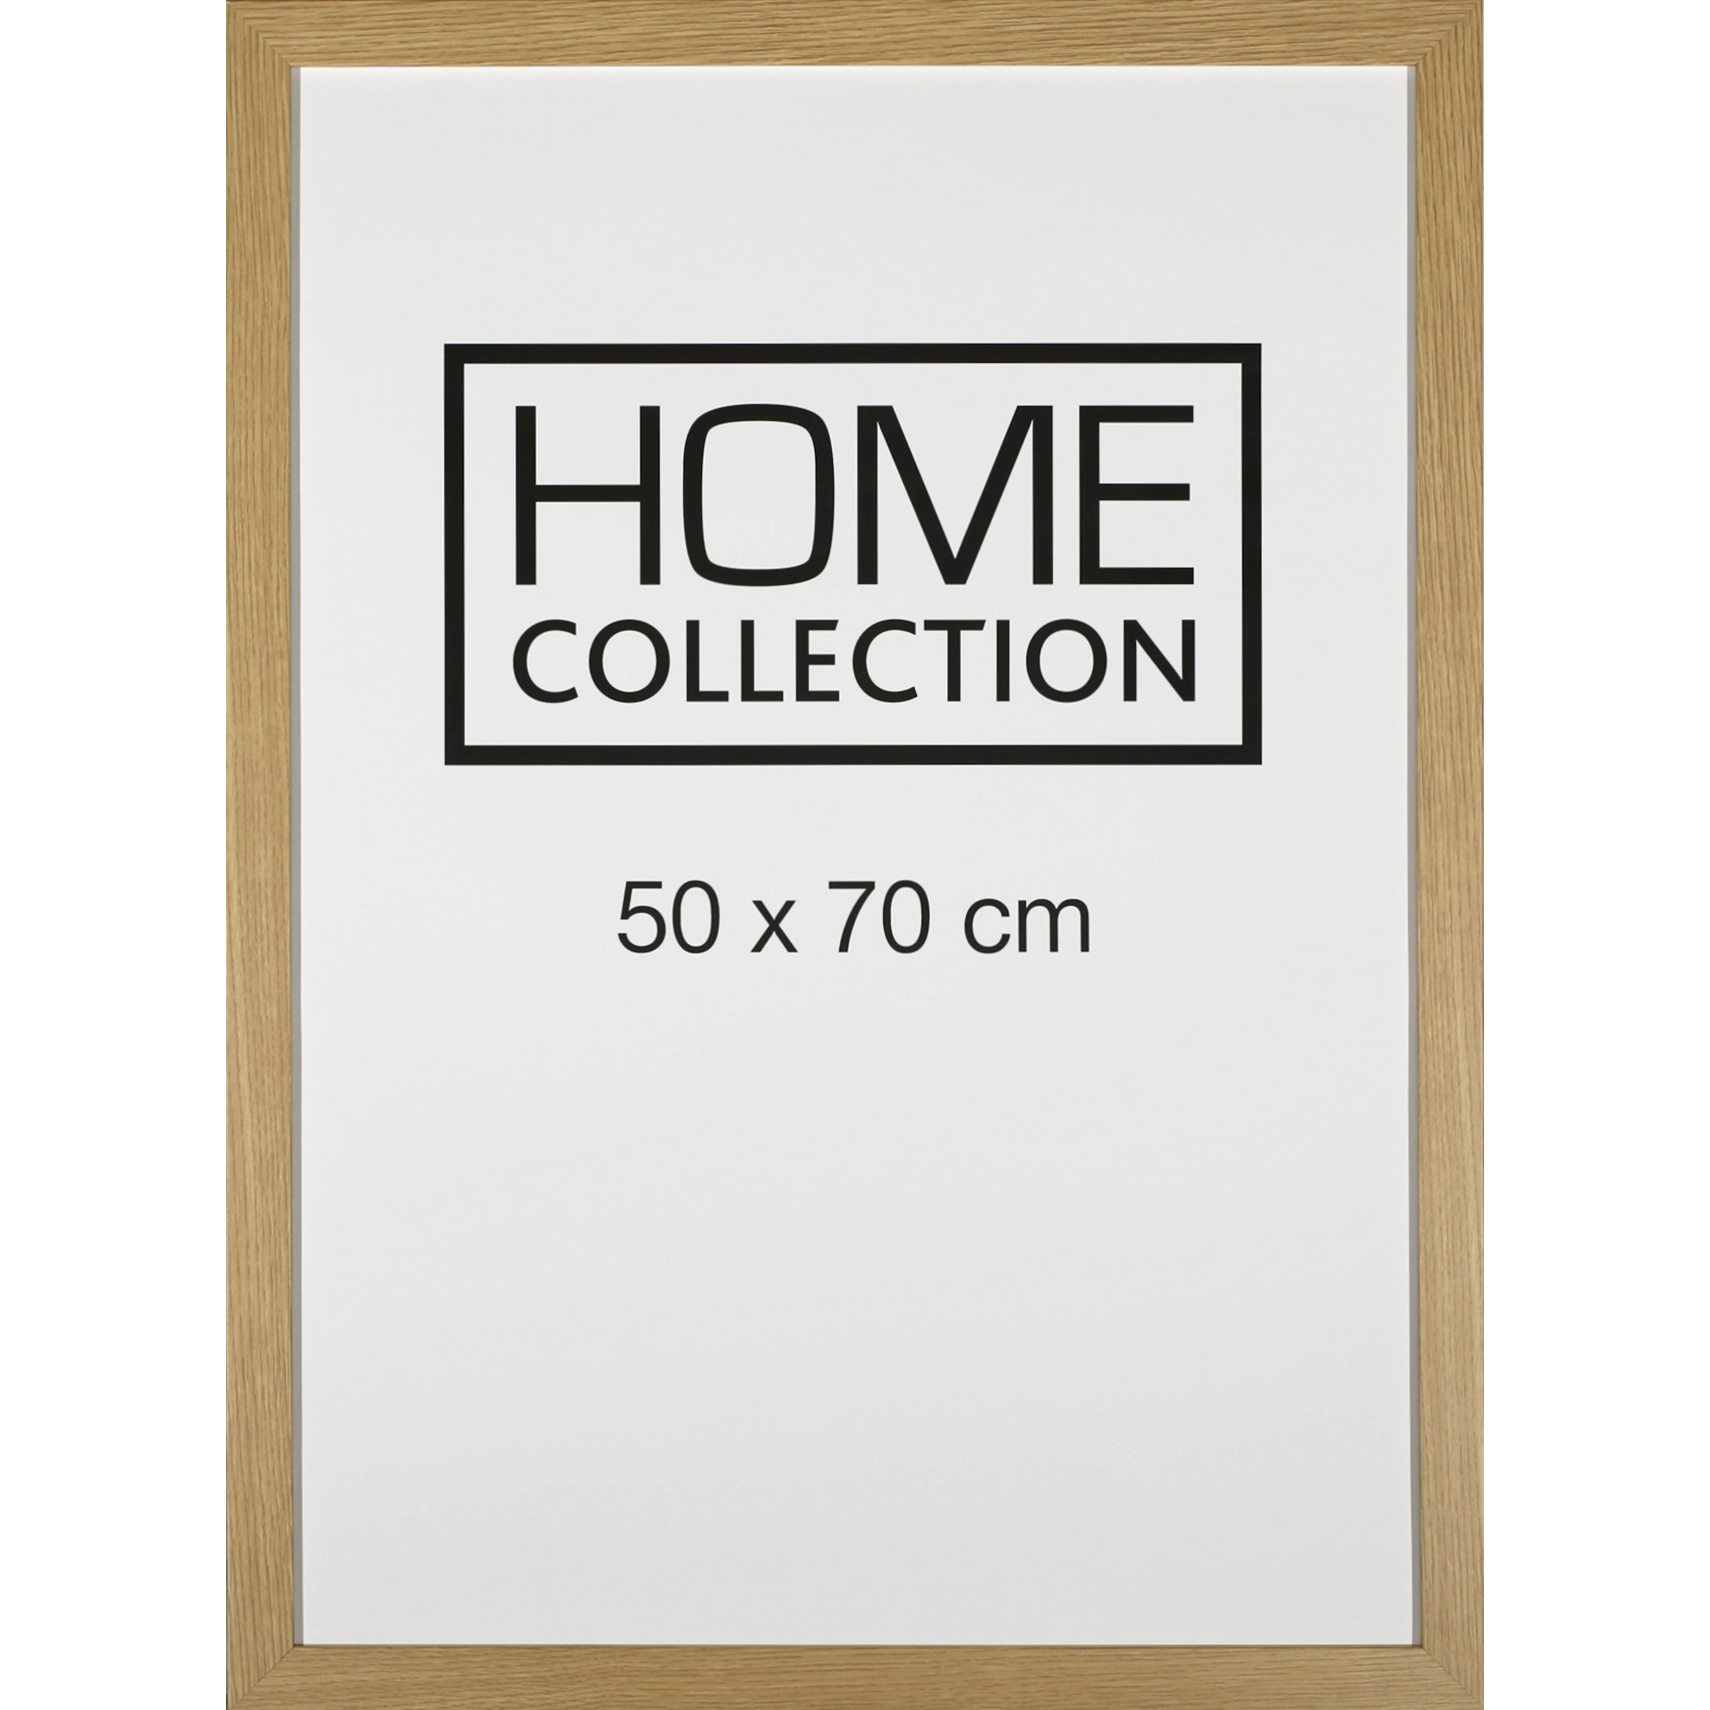 HOME COLLECTION Ramme 50 x 70 x 2 cm - Egetræ ramme